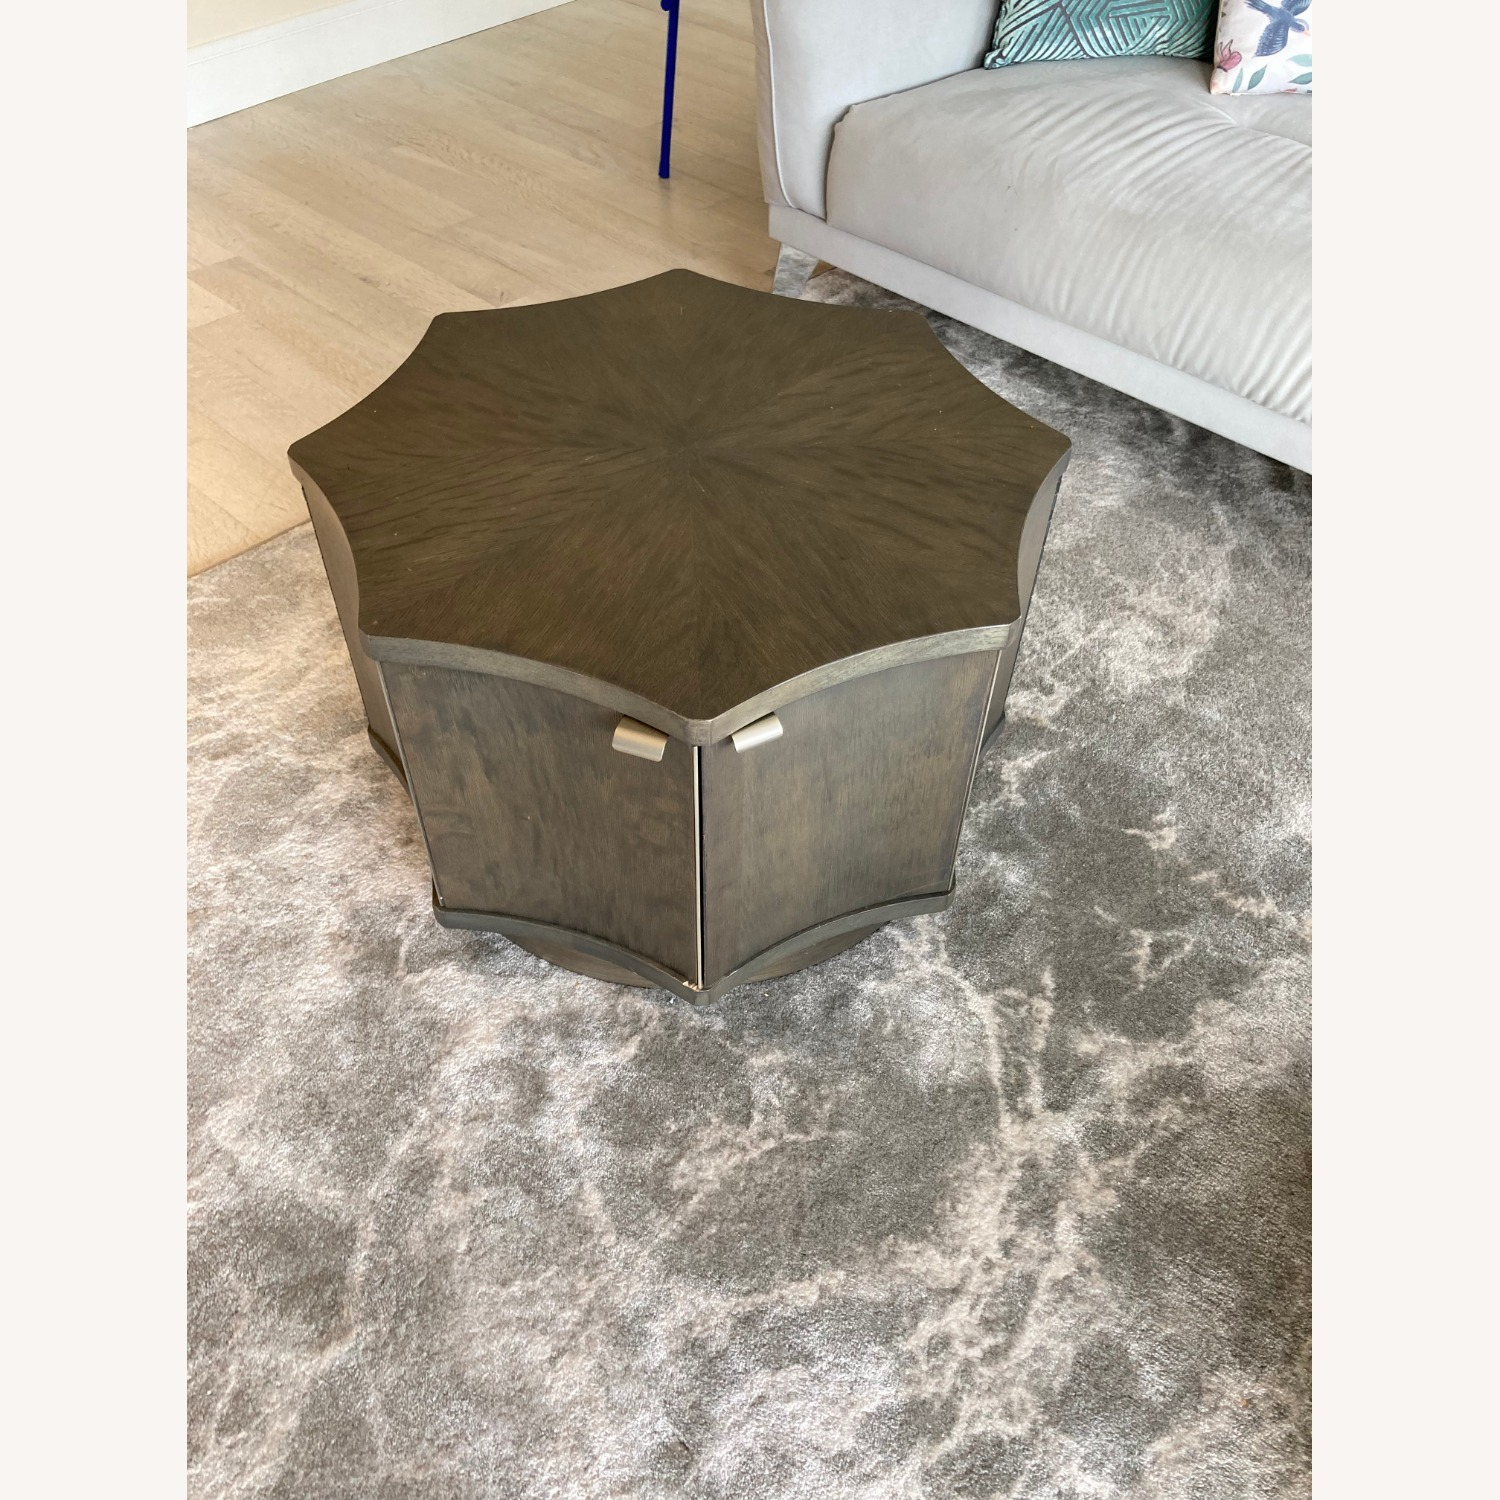 Two Octagonal Storage Coffee Tables - image-2